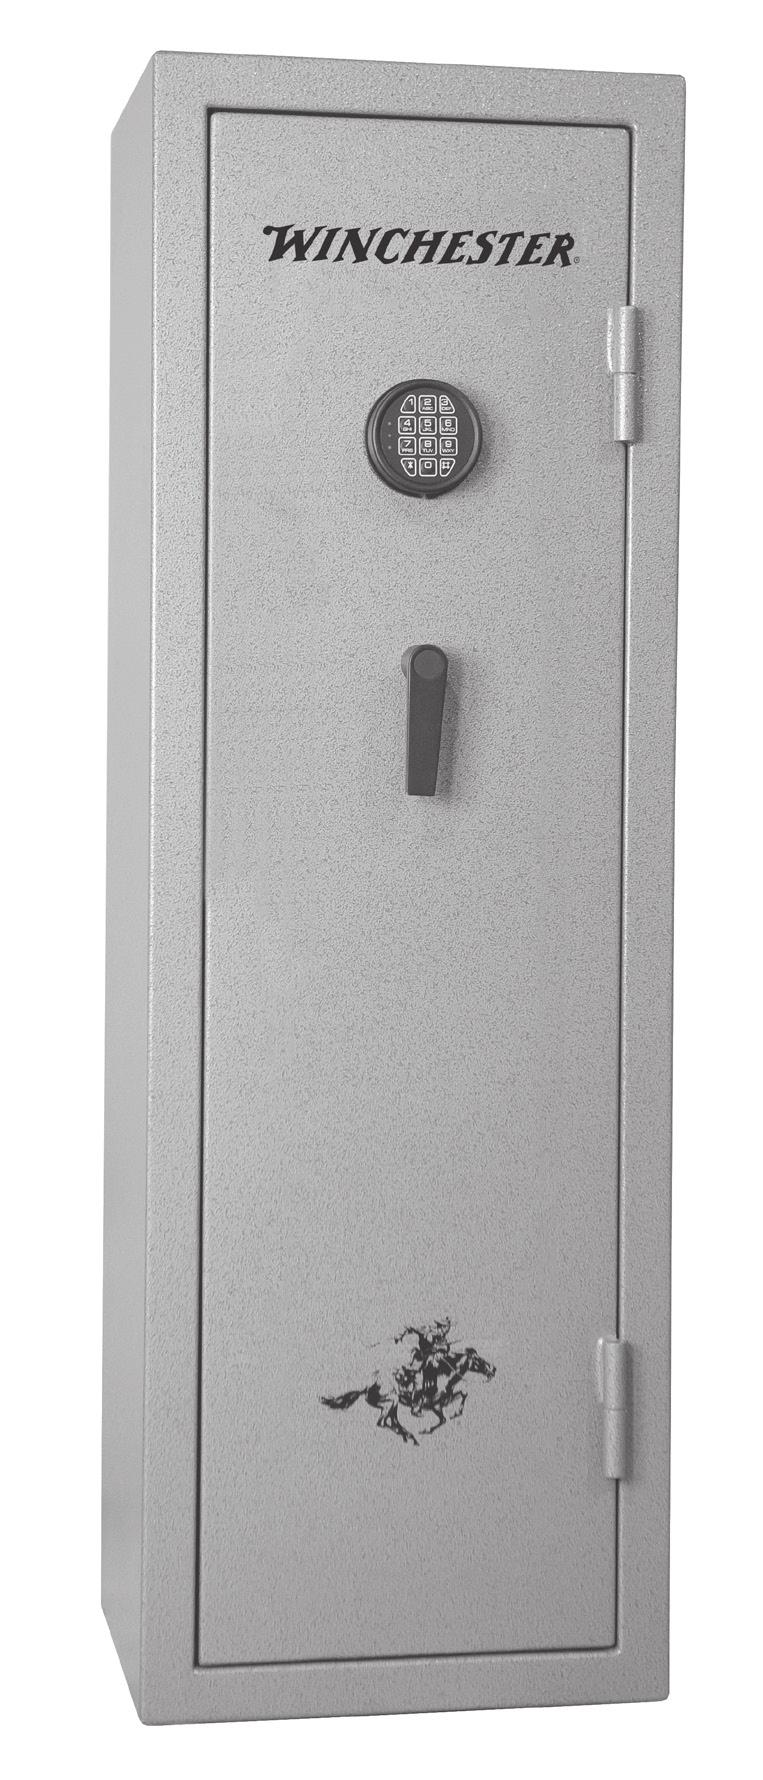 OUTSIDE VIEW Electronic Lock External Hinge Single Lever Handle Safe Door Safe Body